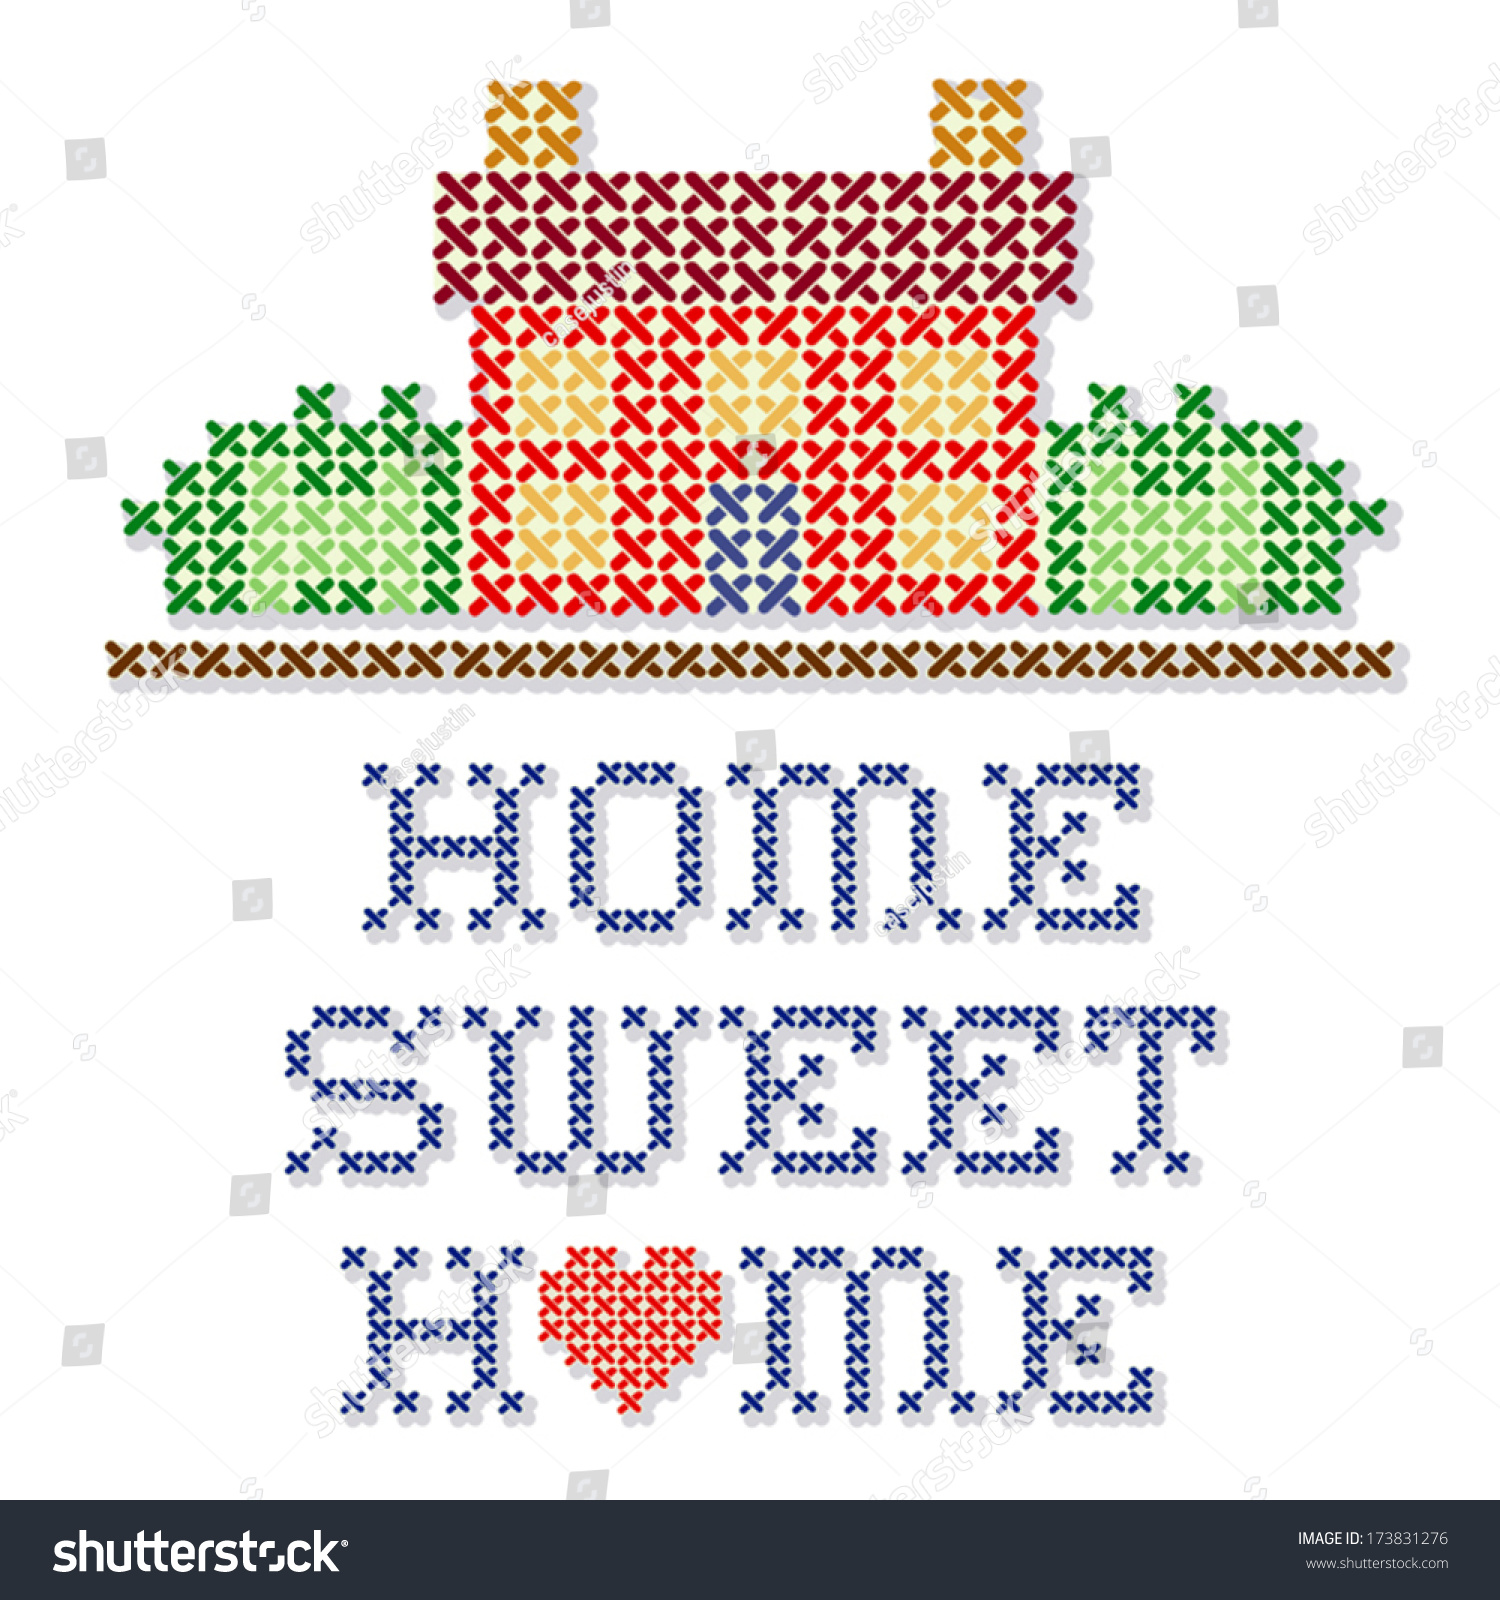 Home Sweet Home Embroidery Cross Stitch Stock Vector Royalty Free